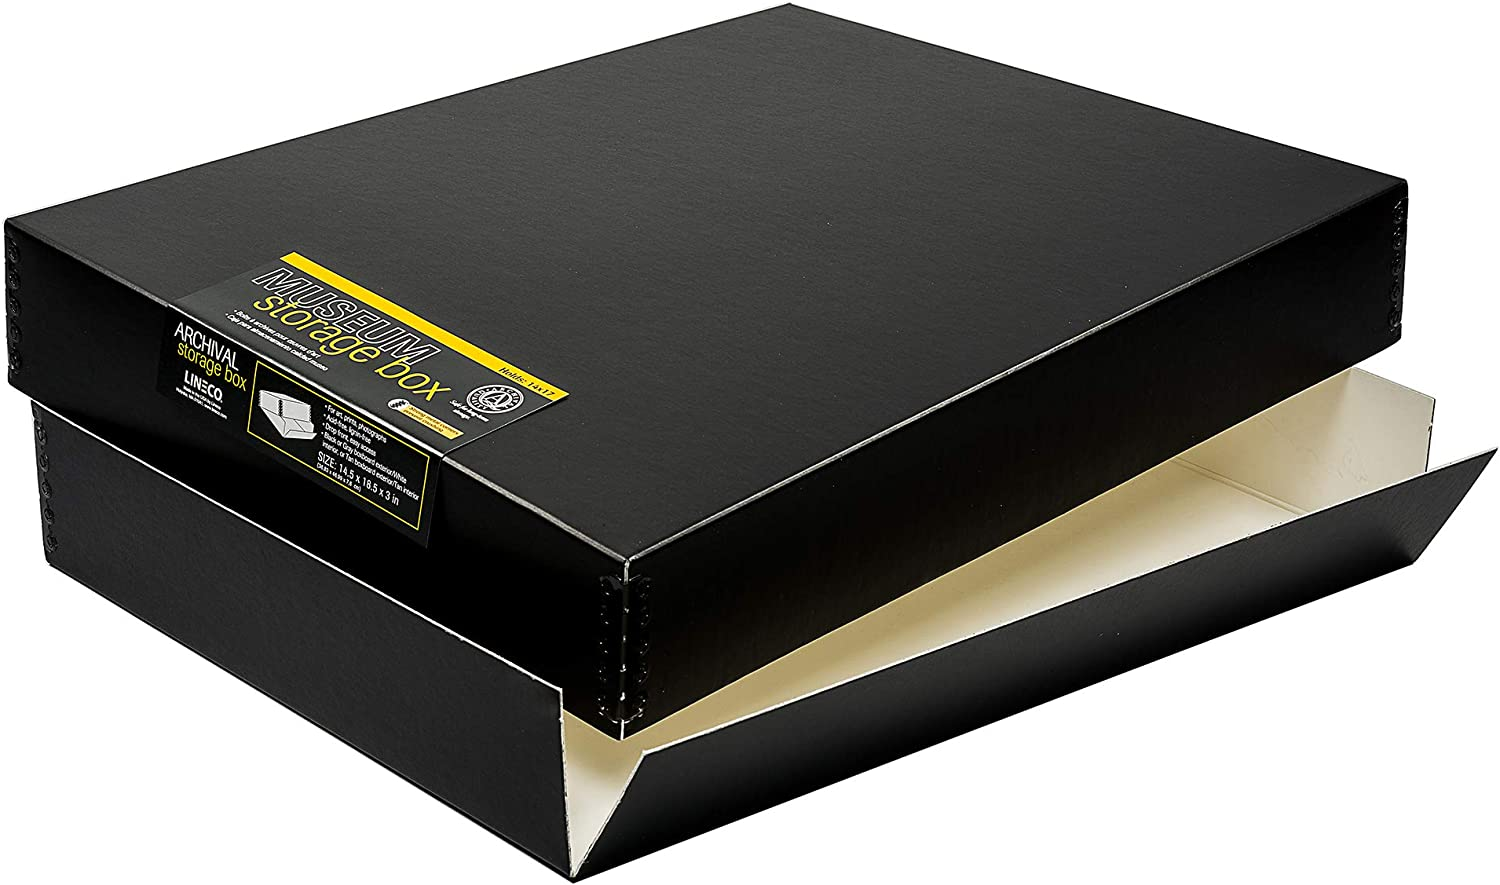 Lineco Museum Storage Box Acid-Free Quality Special price Max 41% OFF for a limited time Archival Drop-Front